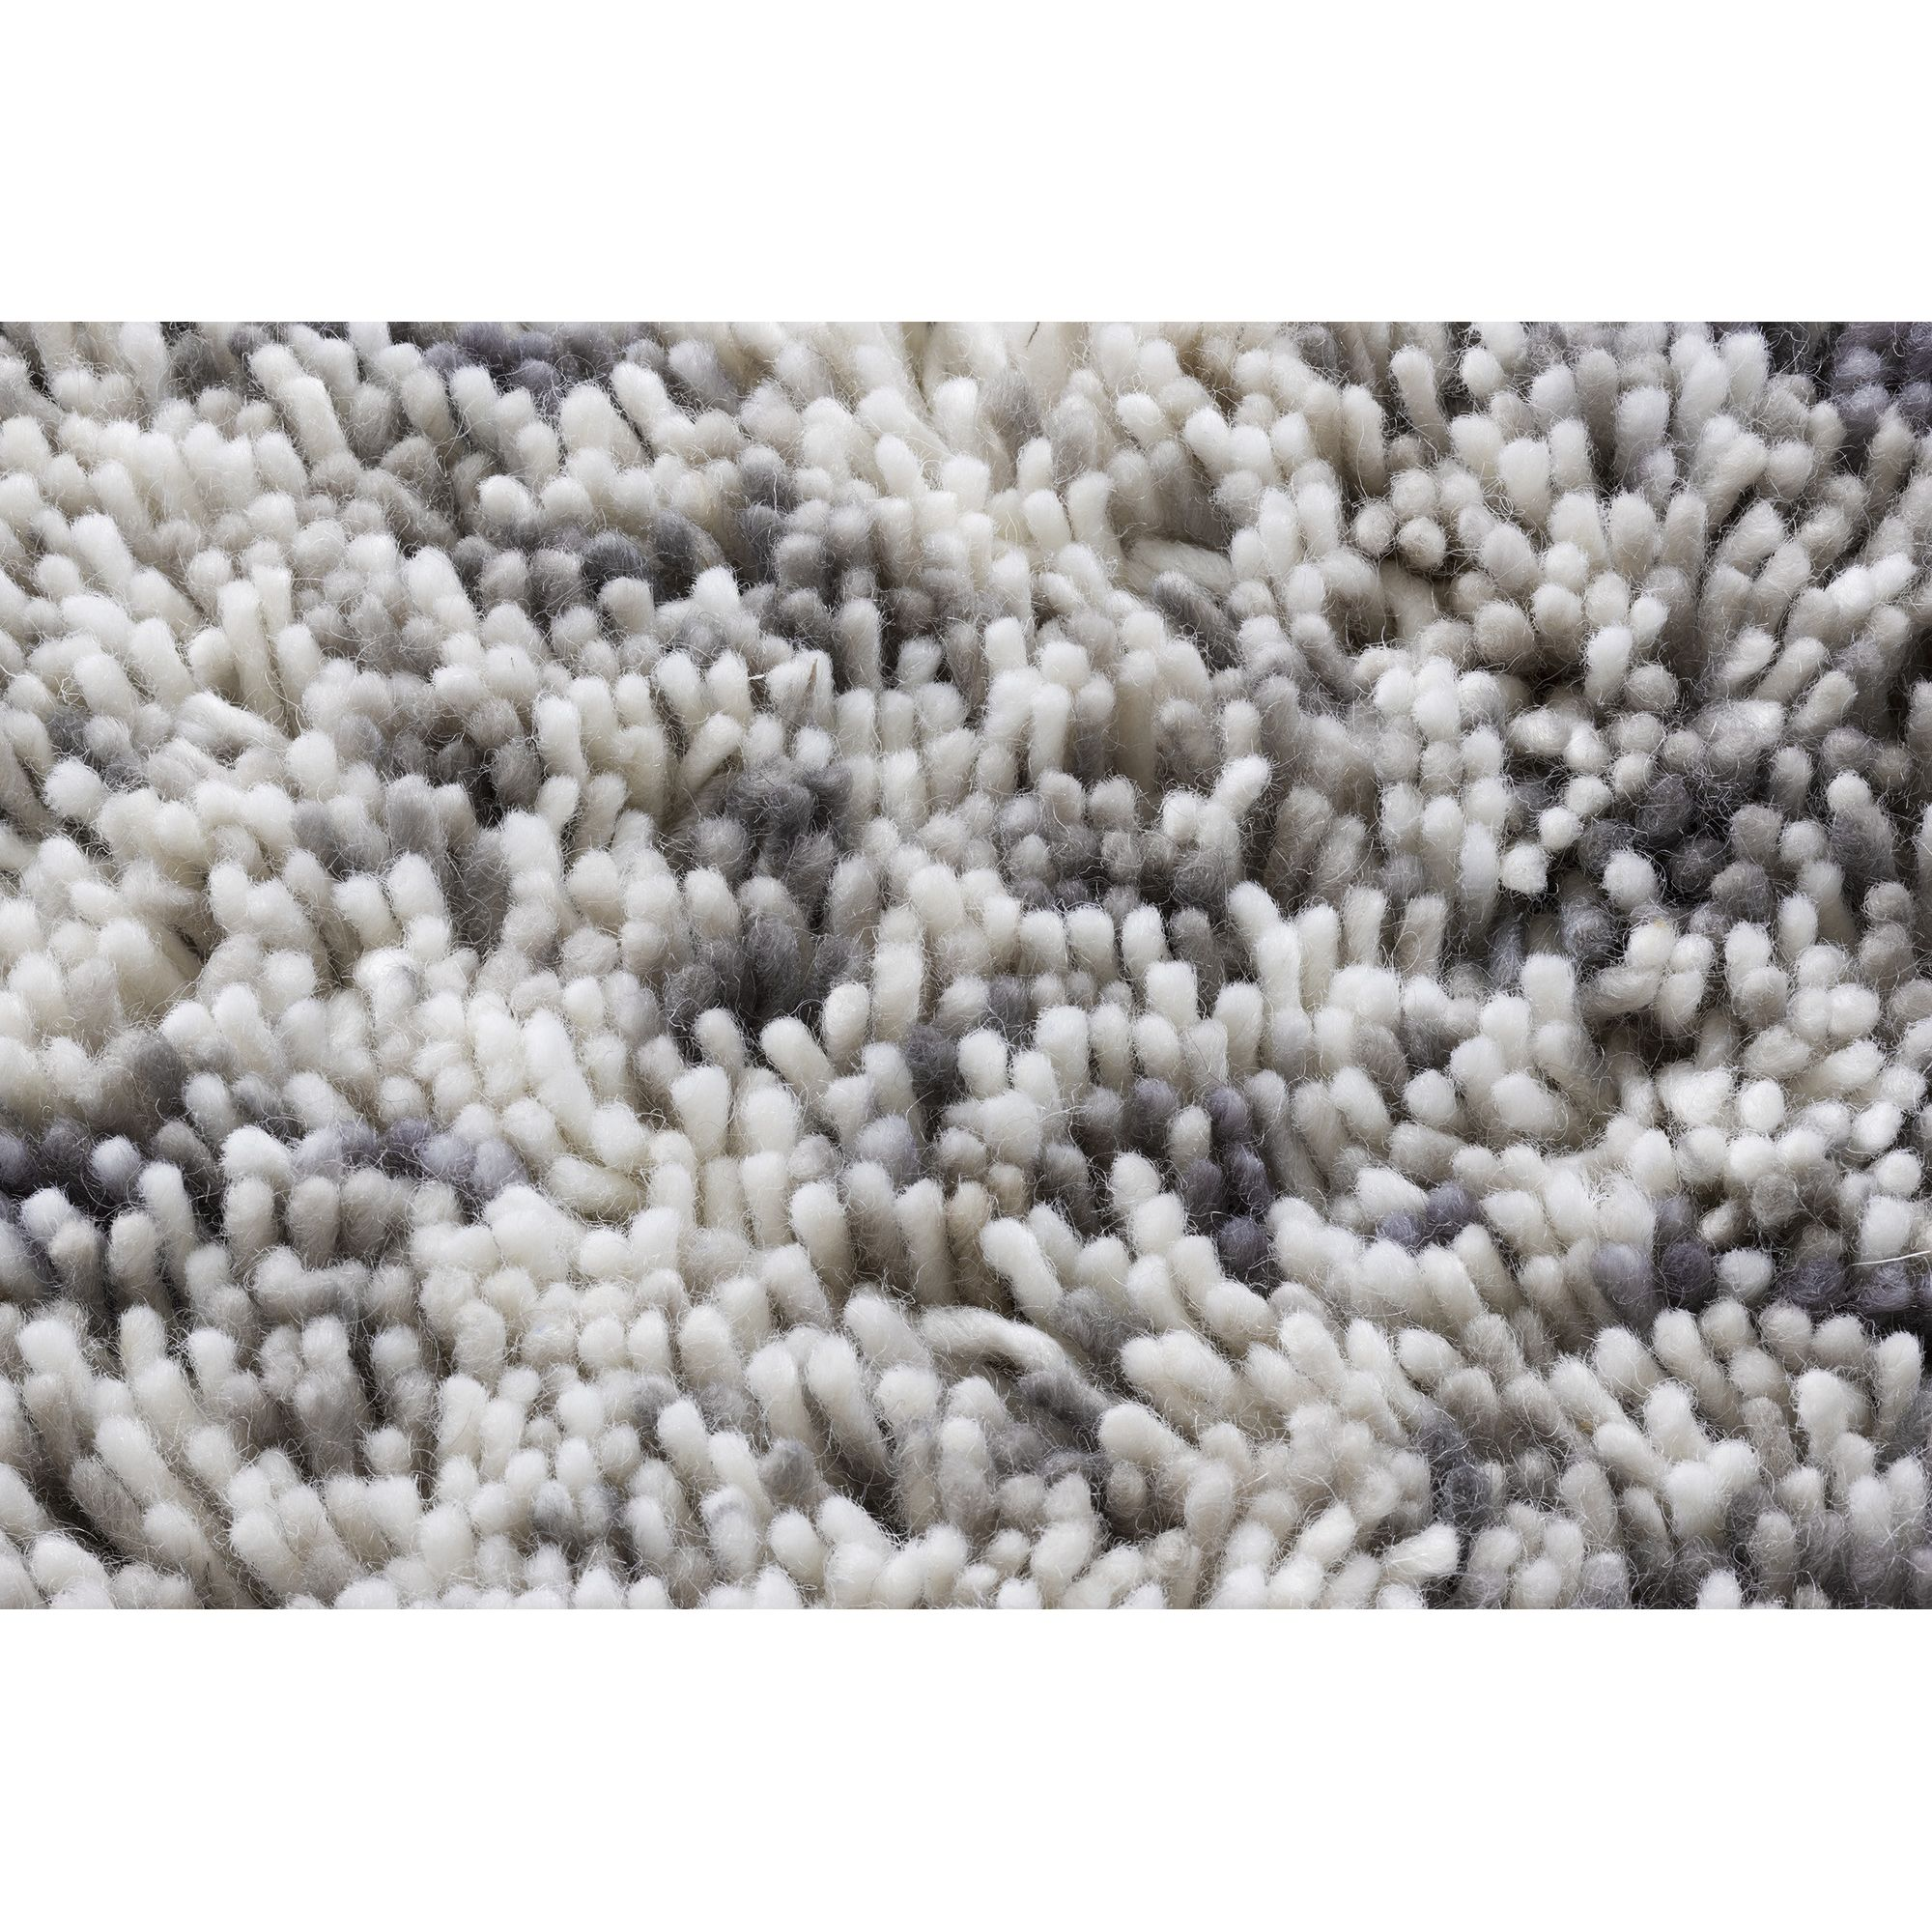 Linie Design Coral Grey Shag Rug - 300cm x 200cm at Tesco Direct